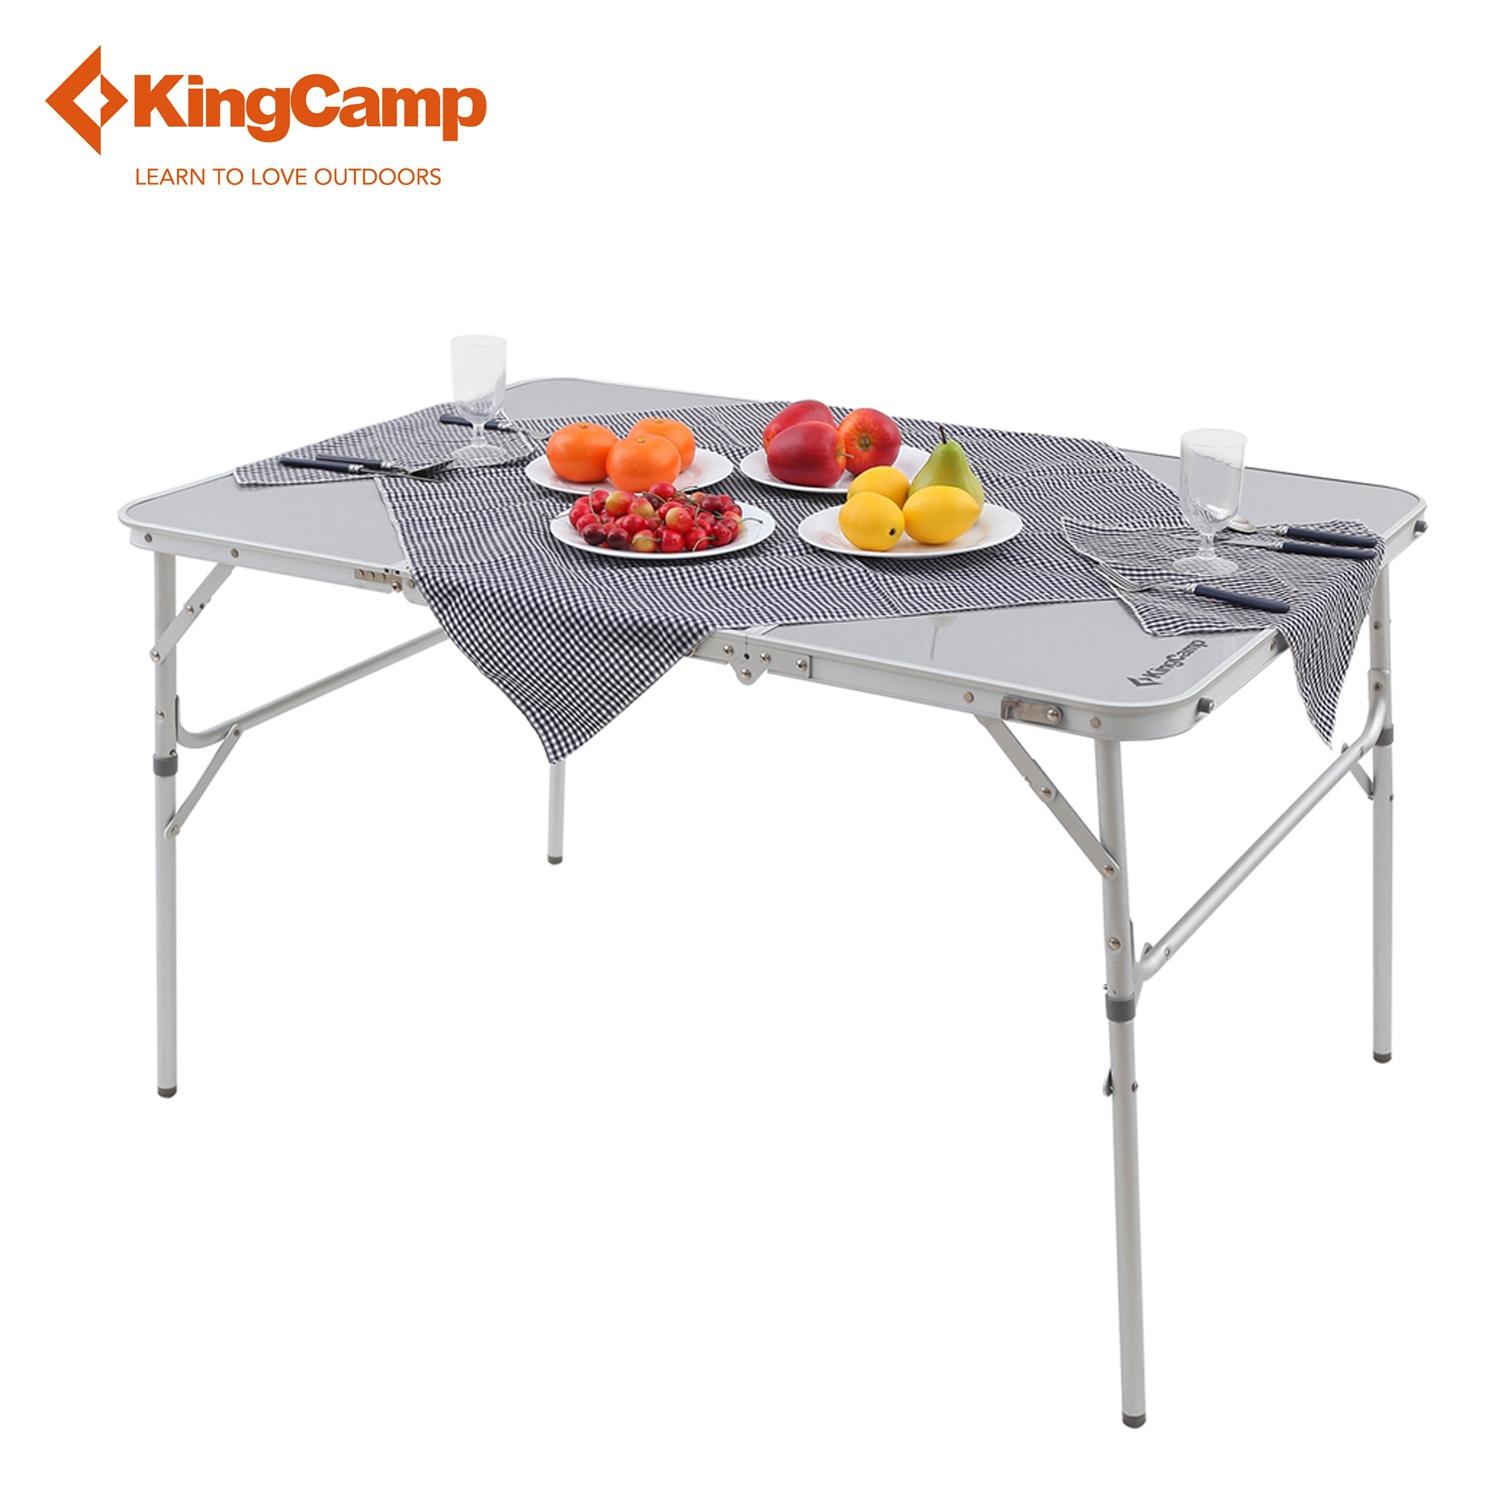 KingCamp Portable 3-folded Aluminum MDF Table for Travel Hiking Trekking Outdoor Folding Table for 4-6(China (Mainland))